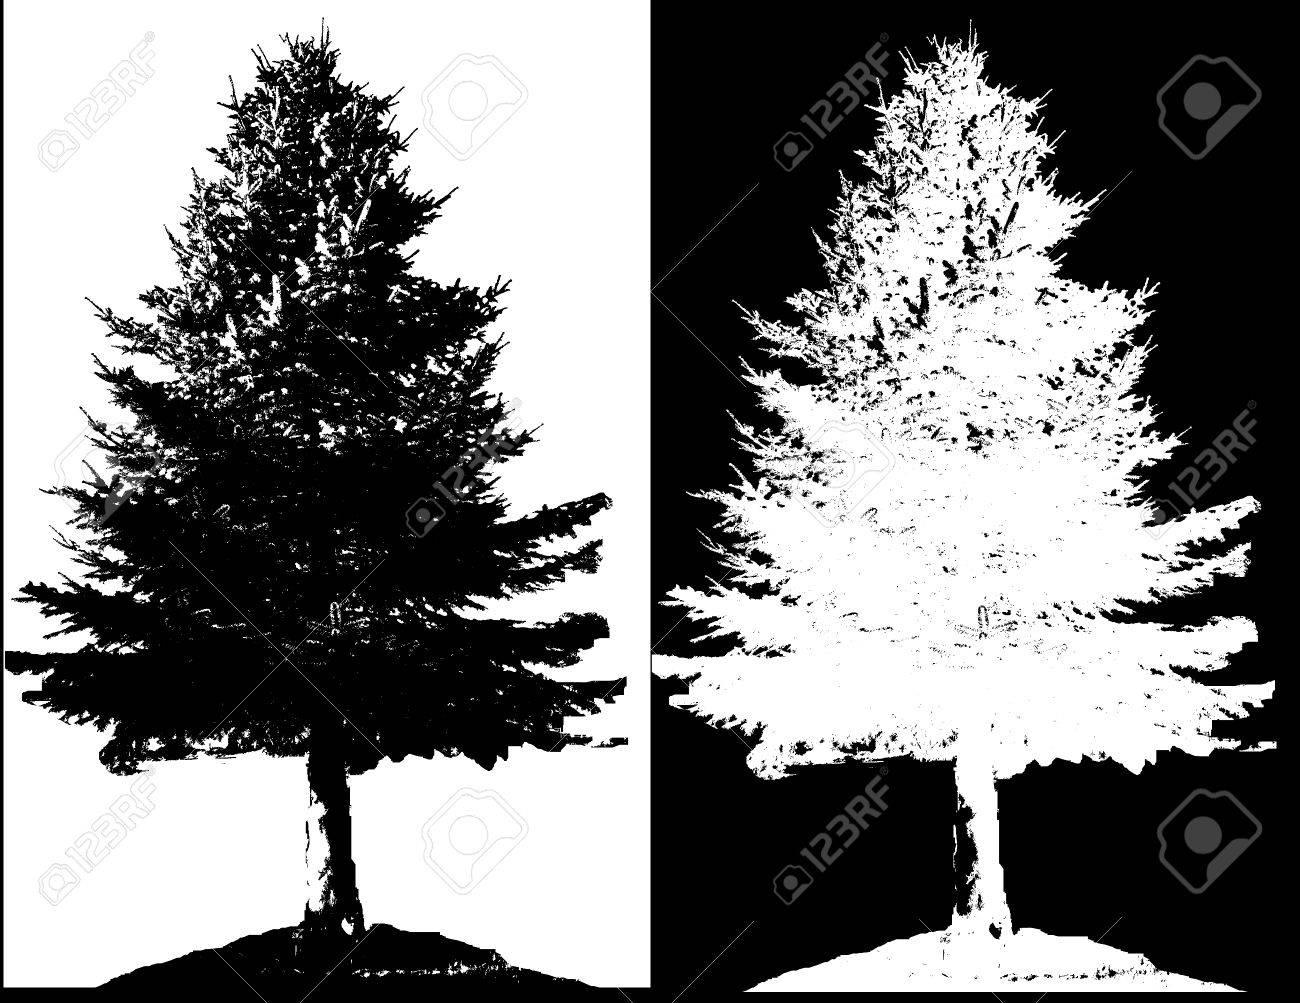 Illustration silhouettes of trees Stock Vector - 25025009